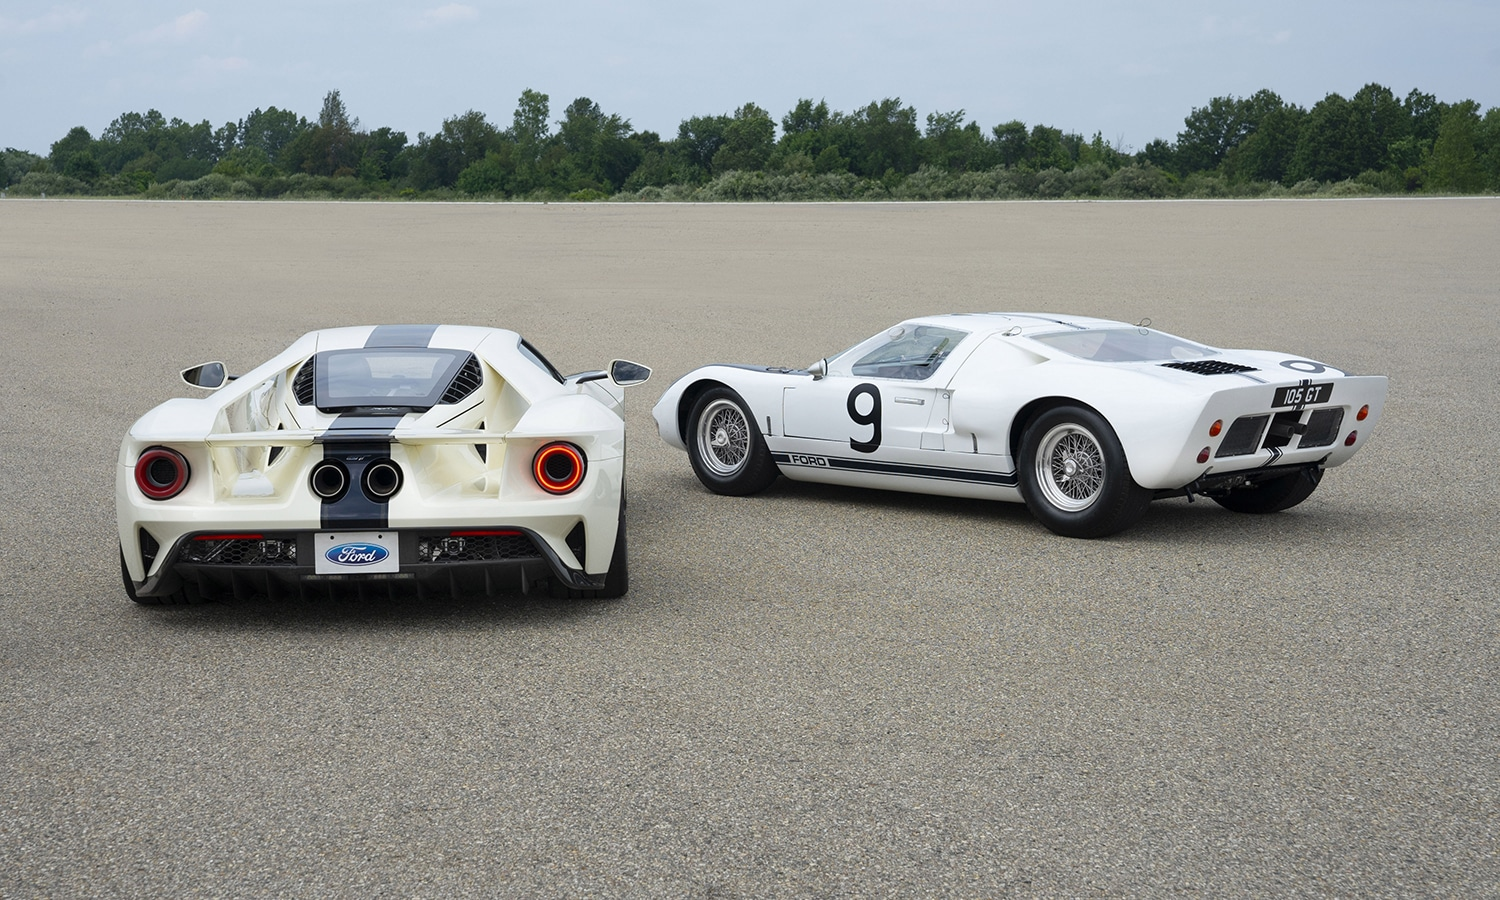 Ford GT 64 Heritage trasera